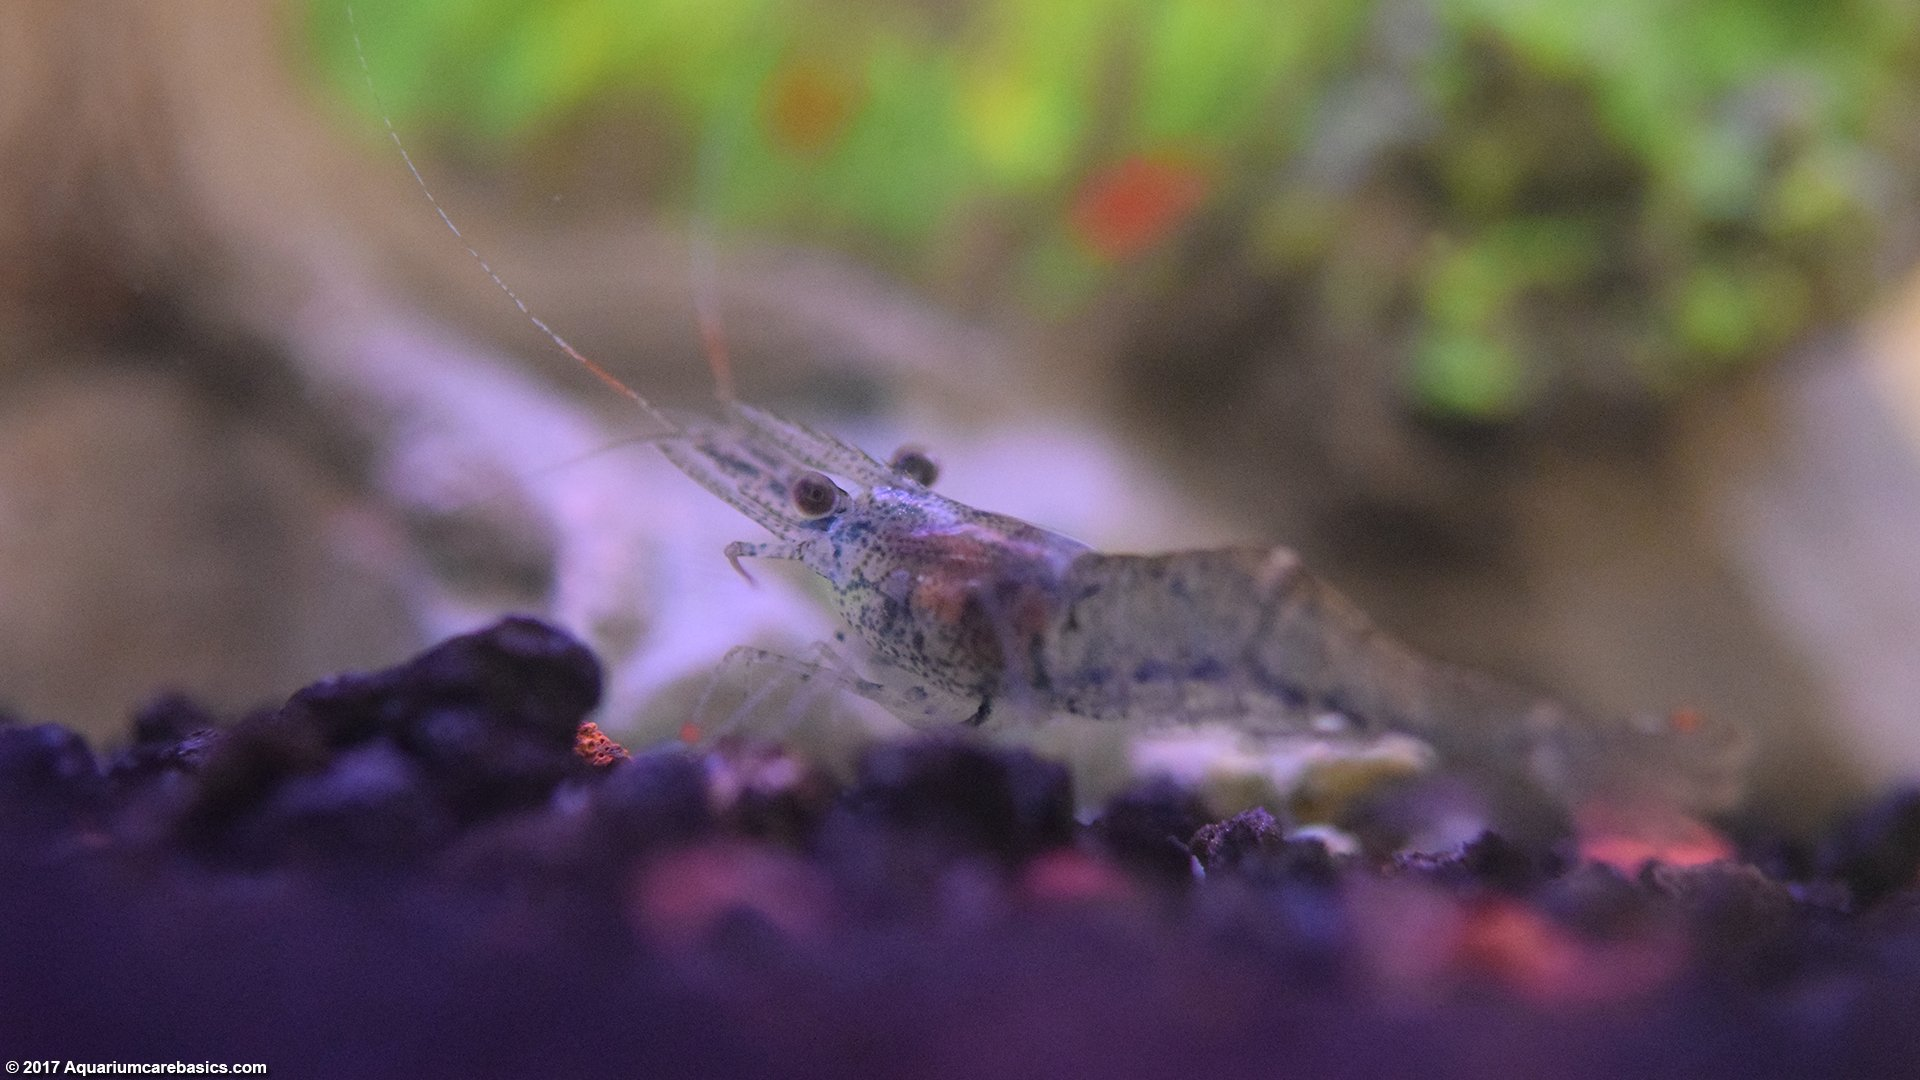 A Ghost Shrimp Standing on Black Aquarium Substrate